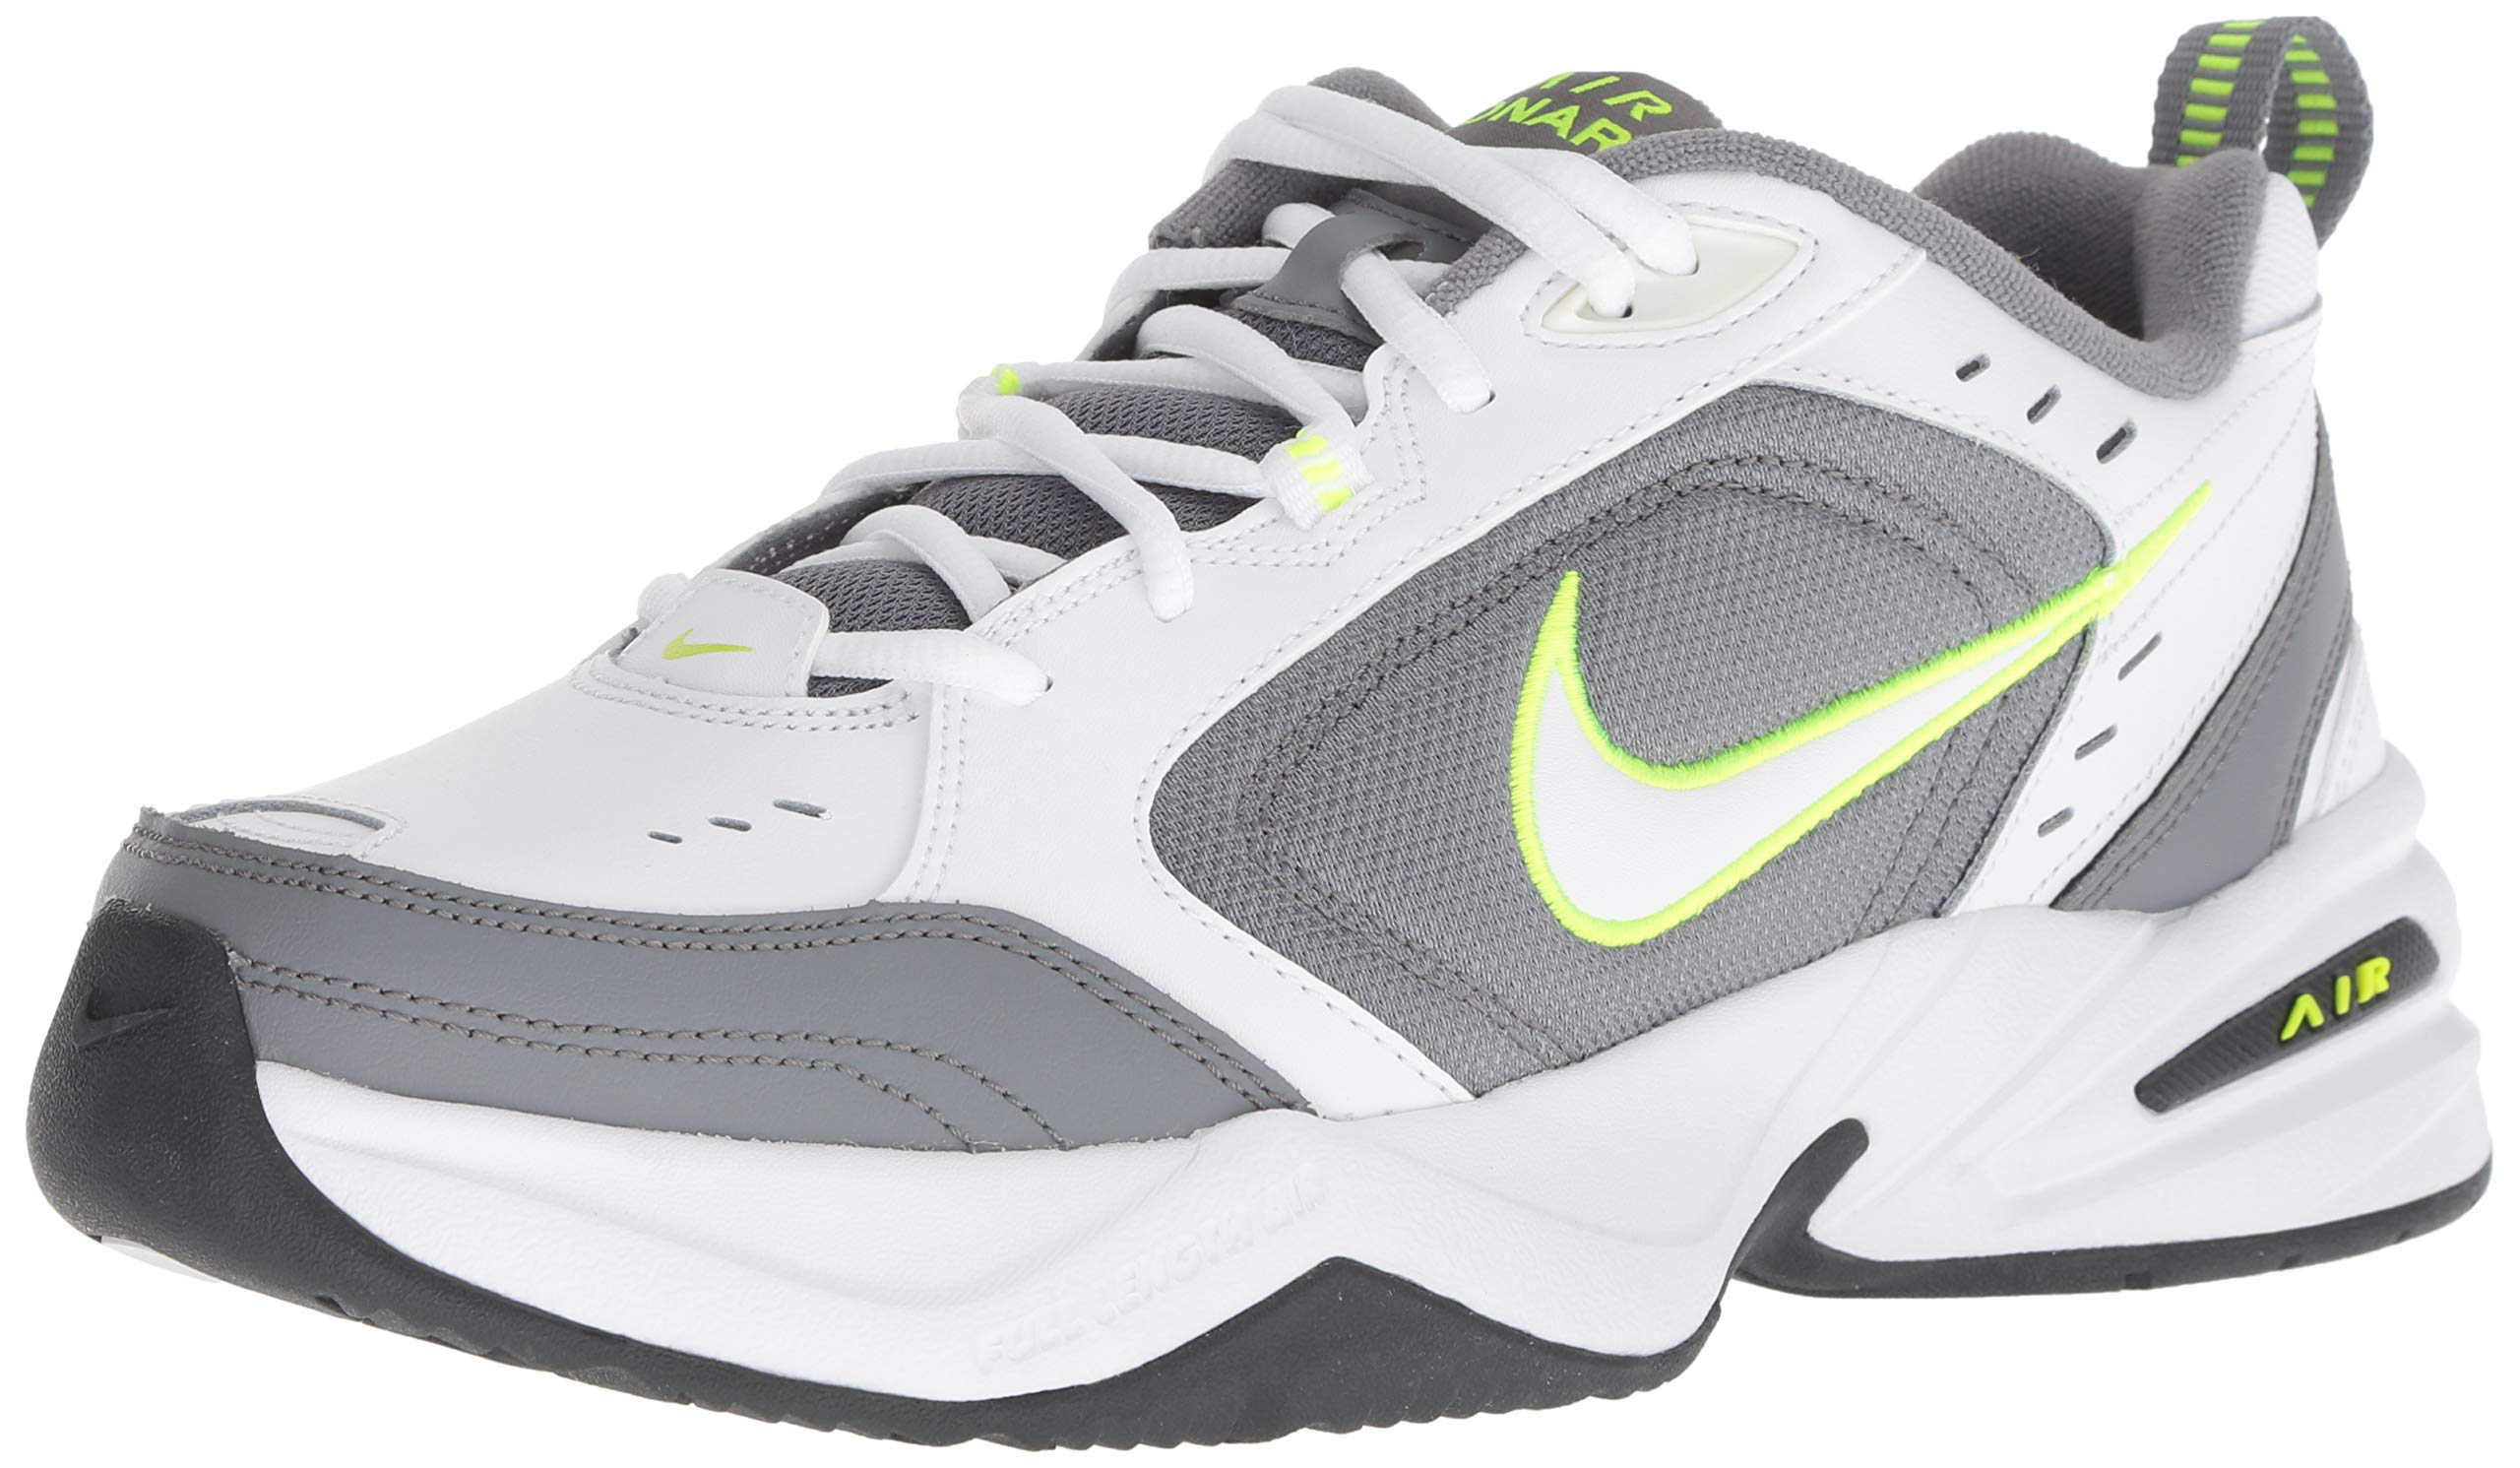 Nike Men's Air Monarch IV Cross Trainer, White/White - Cool Grey - Anthracite, 13 Regular US by Nike